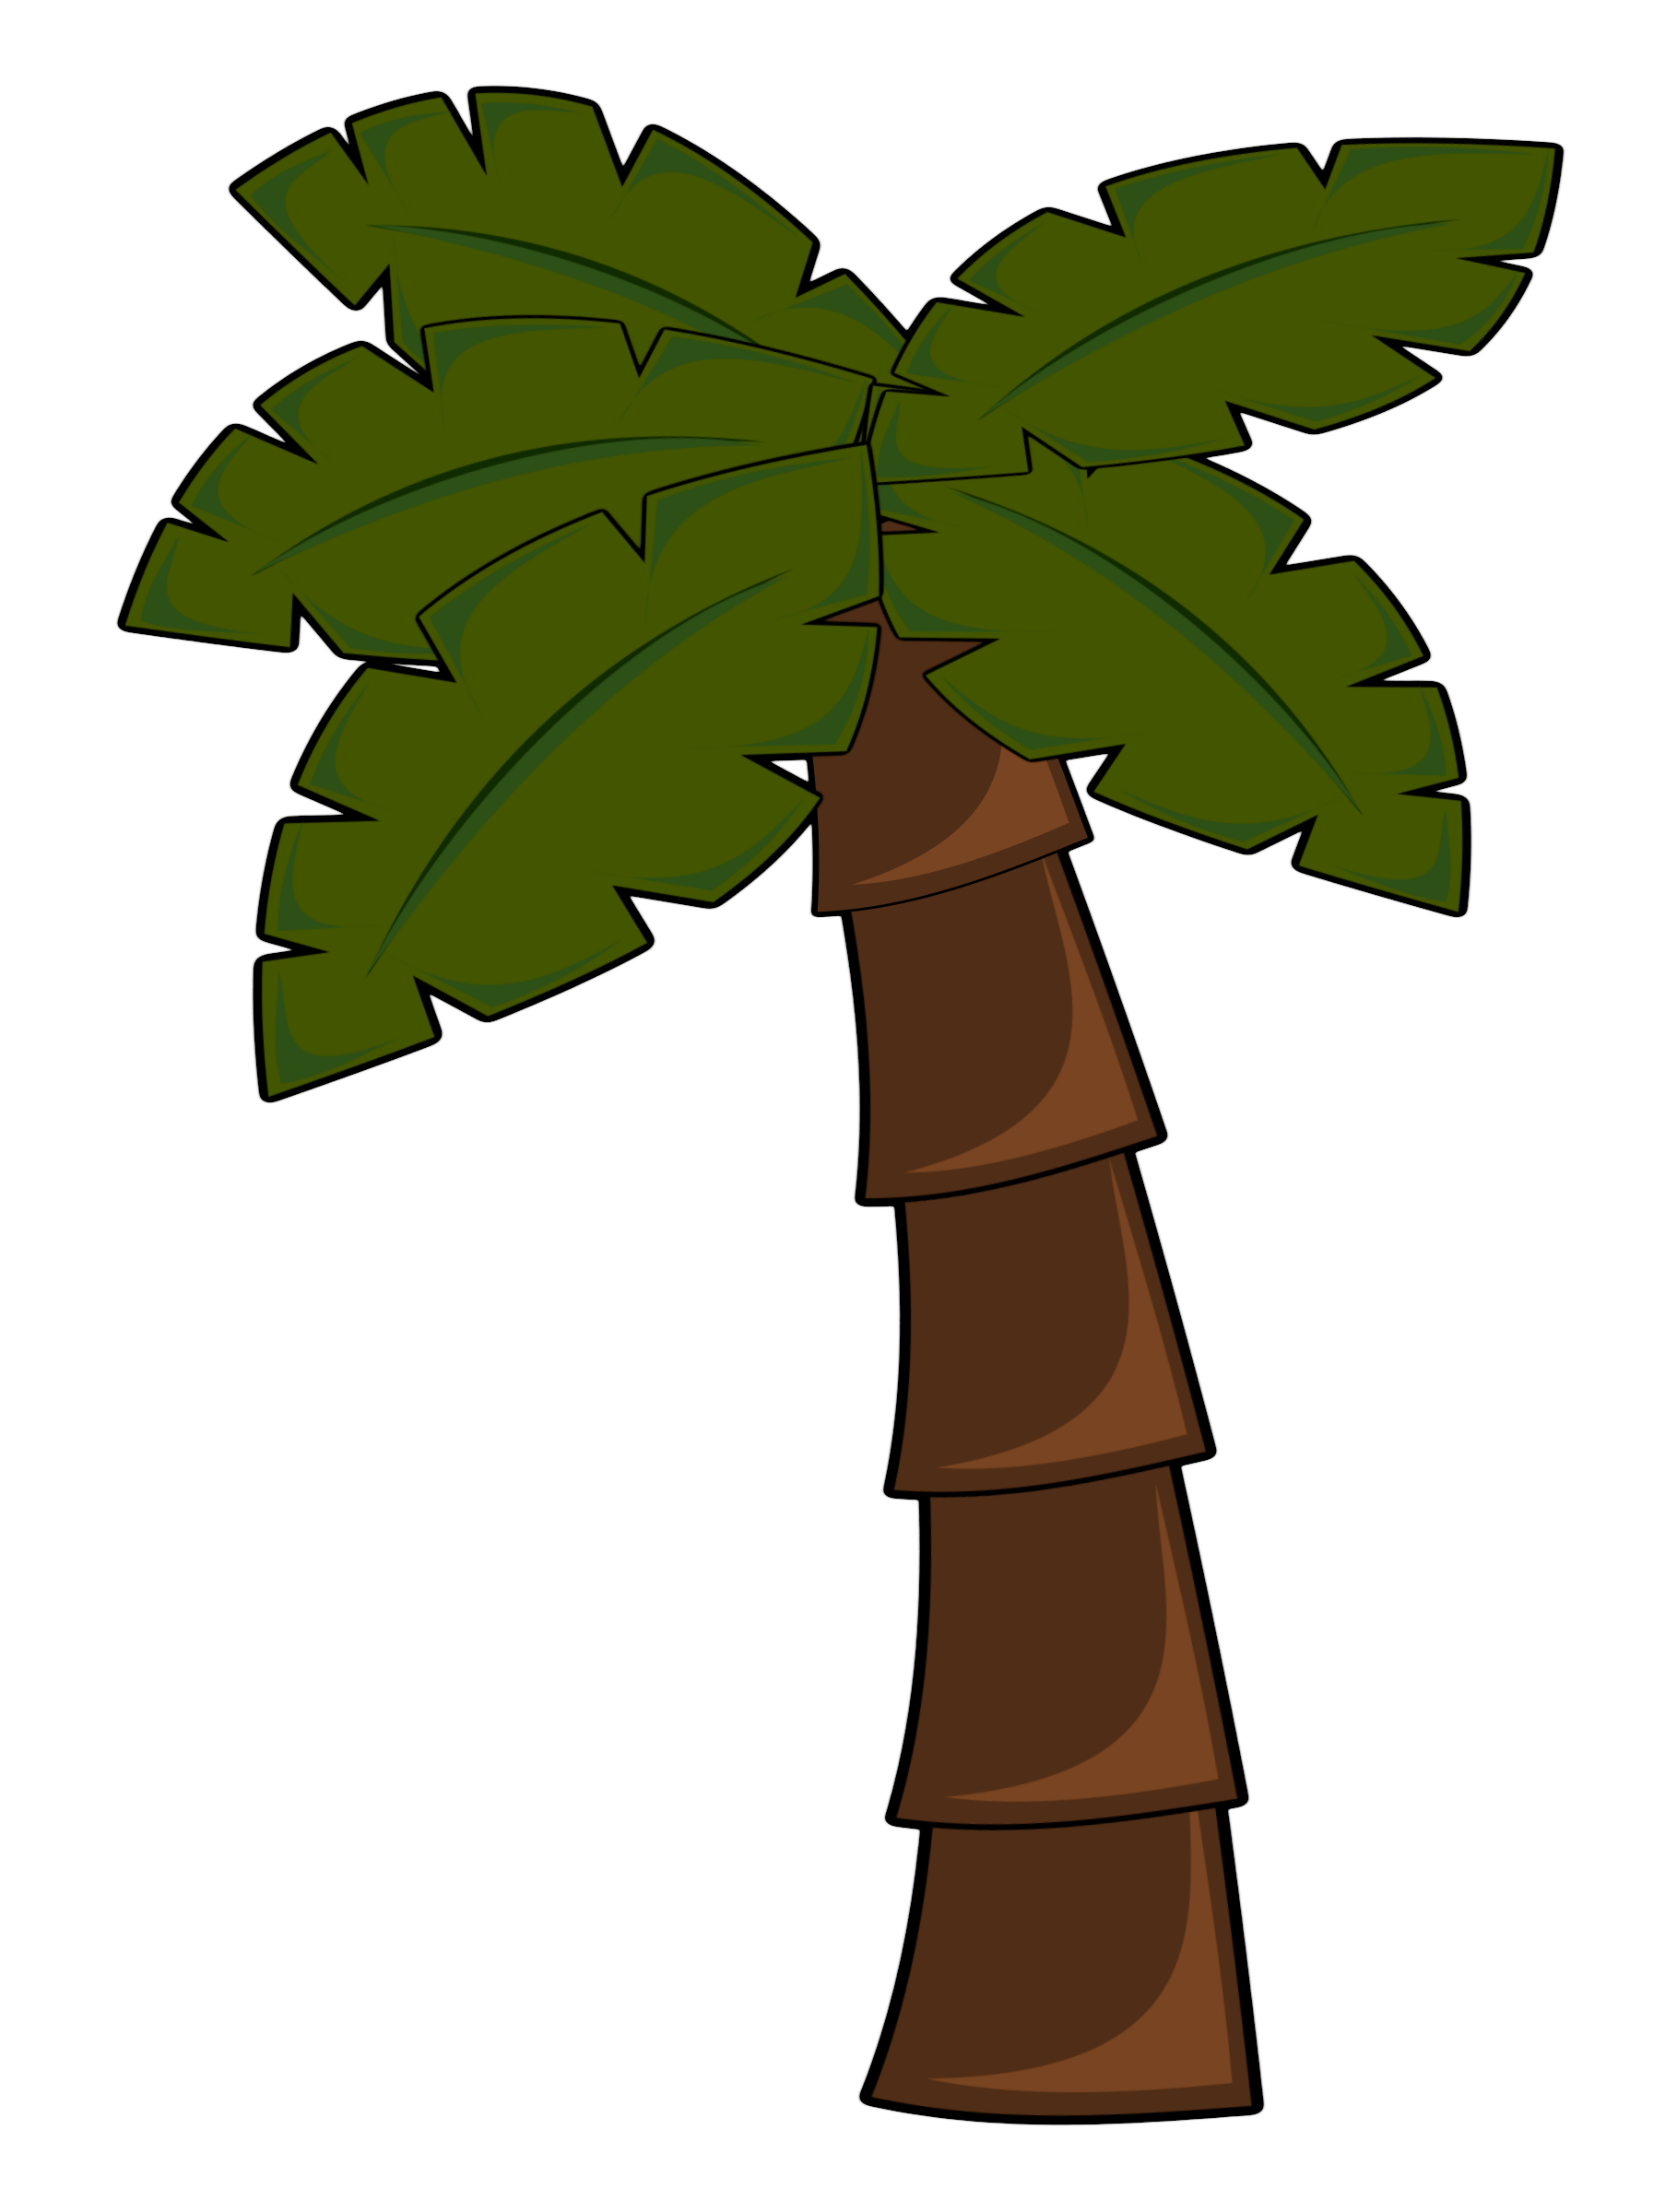 Tropical tree clipart svg royalty free download Clipart - Palm Tree svg royalty free download